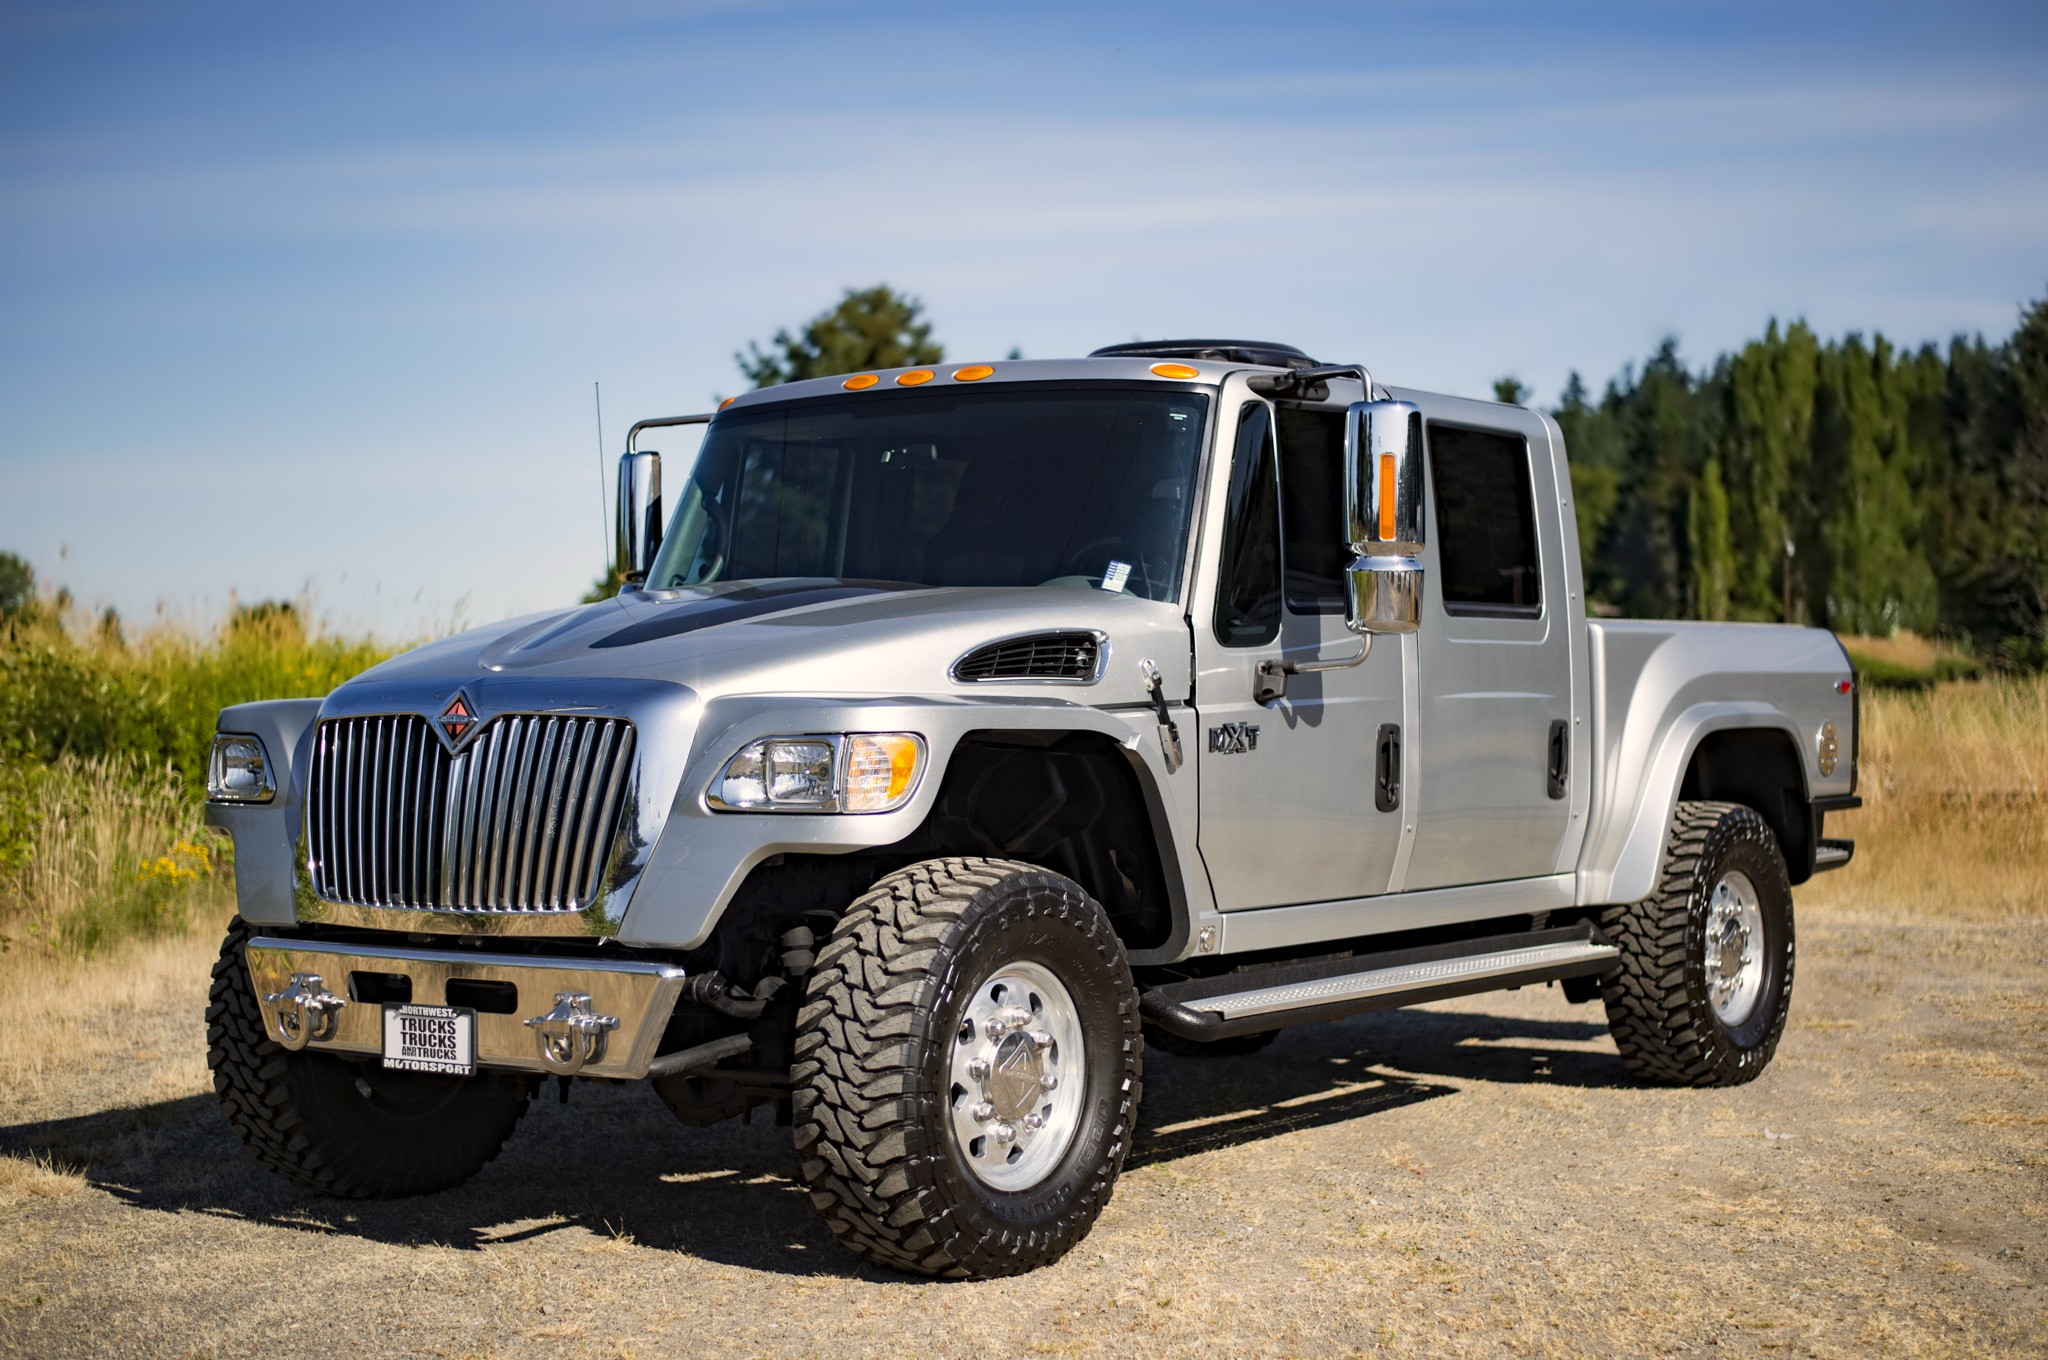 Used 2008 International MXT 4x4 Diesel Truck For Sale - 42817